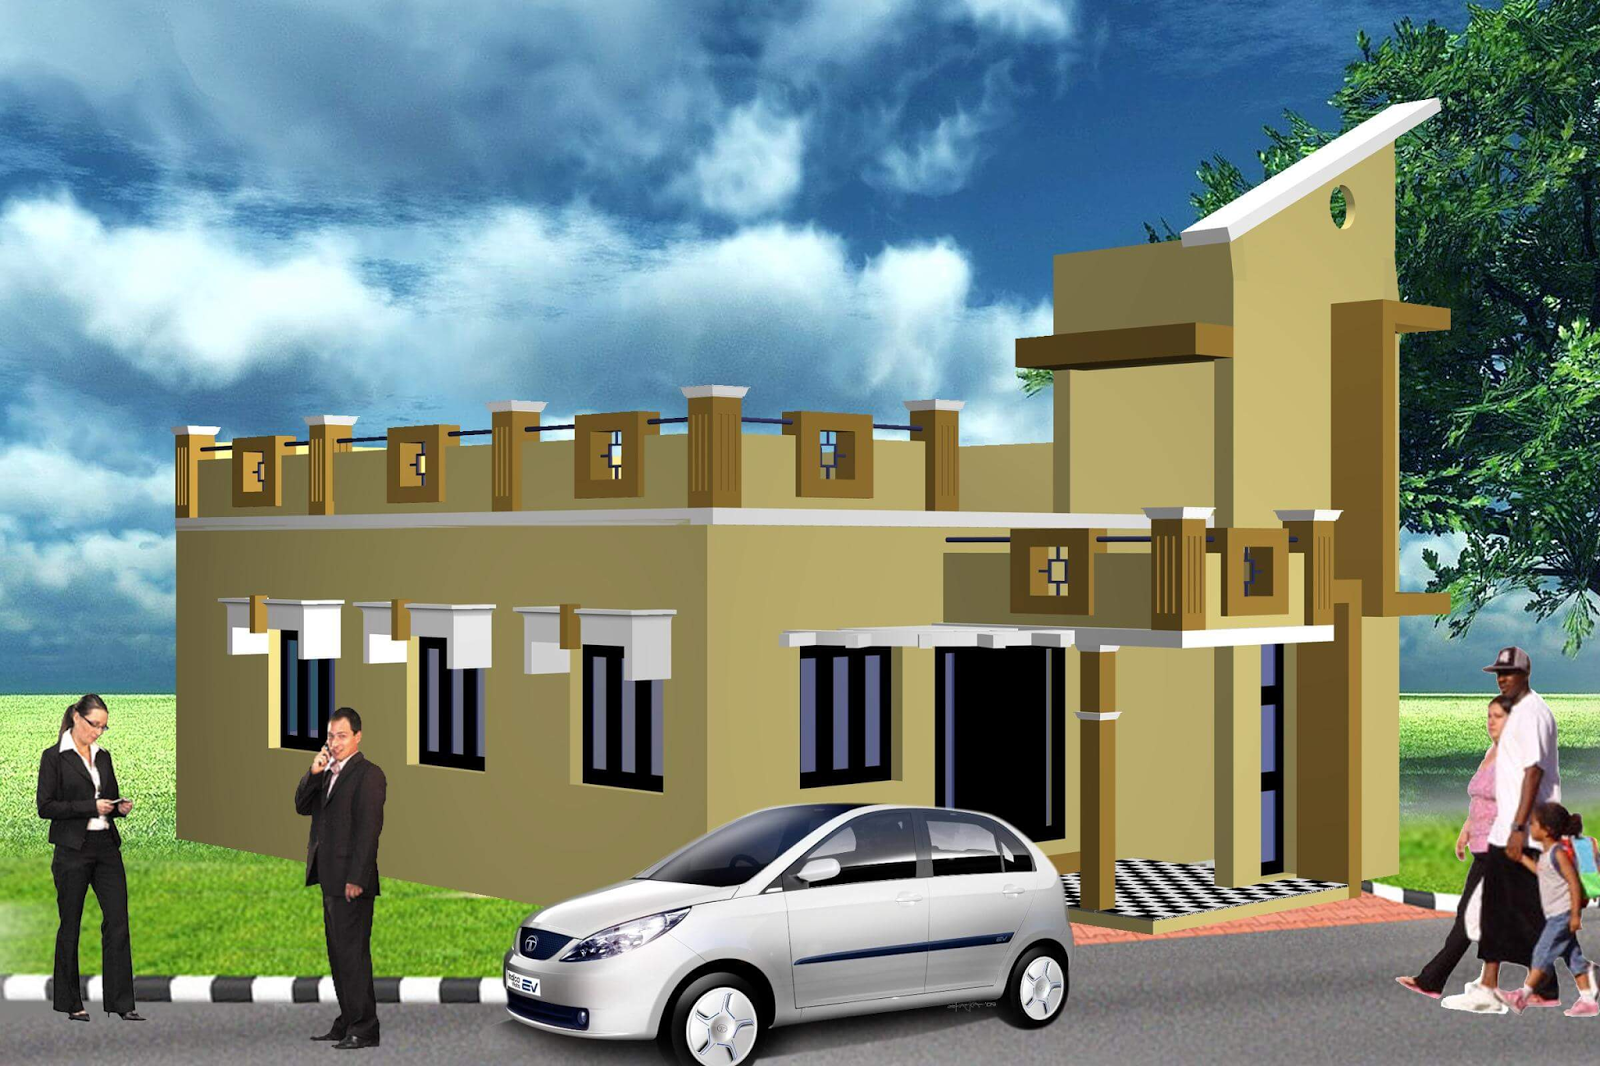 Elevation Designs For Ground Floor Building : House front elevation single story d design photo picture